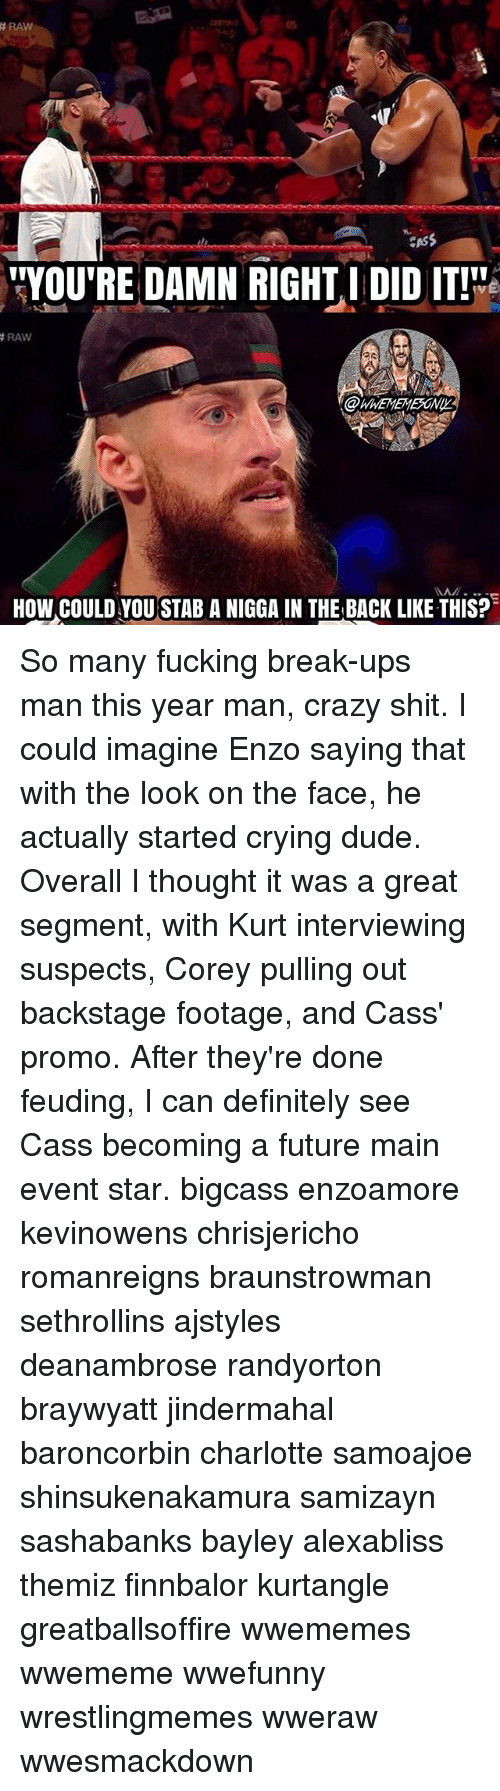 """Crazy, Crying, and Definitely: RAW  CASS  """"YOU'RE DAMN RIGHT I DID IT!  RAW  HOW COULD YOU STAB A NIGGA IN THE BACK LIKE THIS? So many fucking break-ups man this year man, crazy shit. I could imagine Enzo saying that with the look on the face, he actually started crying dude. Overall I thought it was a great segment, with Kurt interviewing suspects, Corey pulling out backstage footage, and Cass' promo. After they're done feuding, I can definitely see Cass becoming a future main event star. bigcass enzoamore kevinowens chrisjericho romanreigns braunstrowman sethrollins ajstyles deanambrose randyorton braywyatt jindermahal baroncorbin charlotte samoajoe shinsukenakamura samizayn sashabanks bayley alexabliss themiz finnbalor kurtangle greatballsoffire wwememes wwememe wwefunny wrestlingmemes wweraw wwesmackdown"""